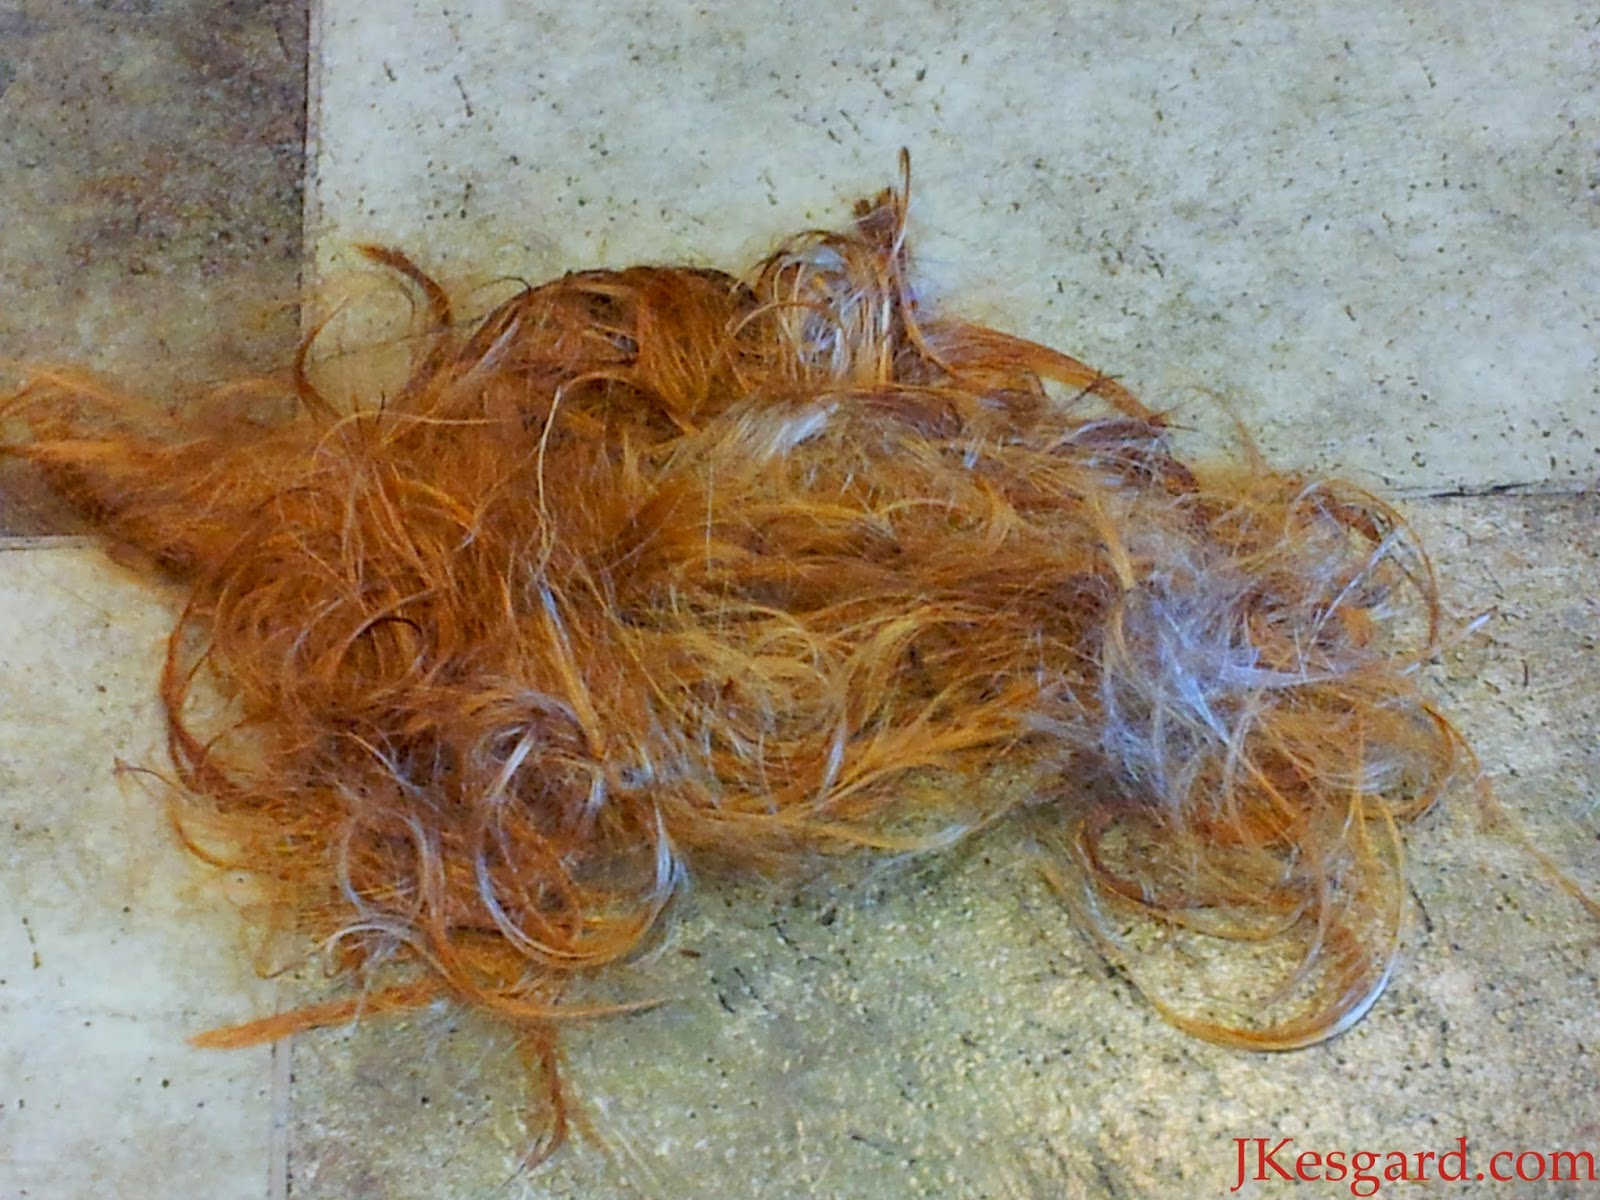 Pile of deceased color treated hair